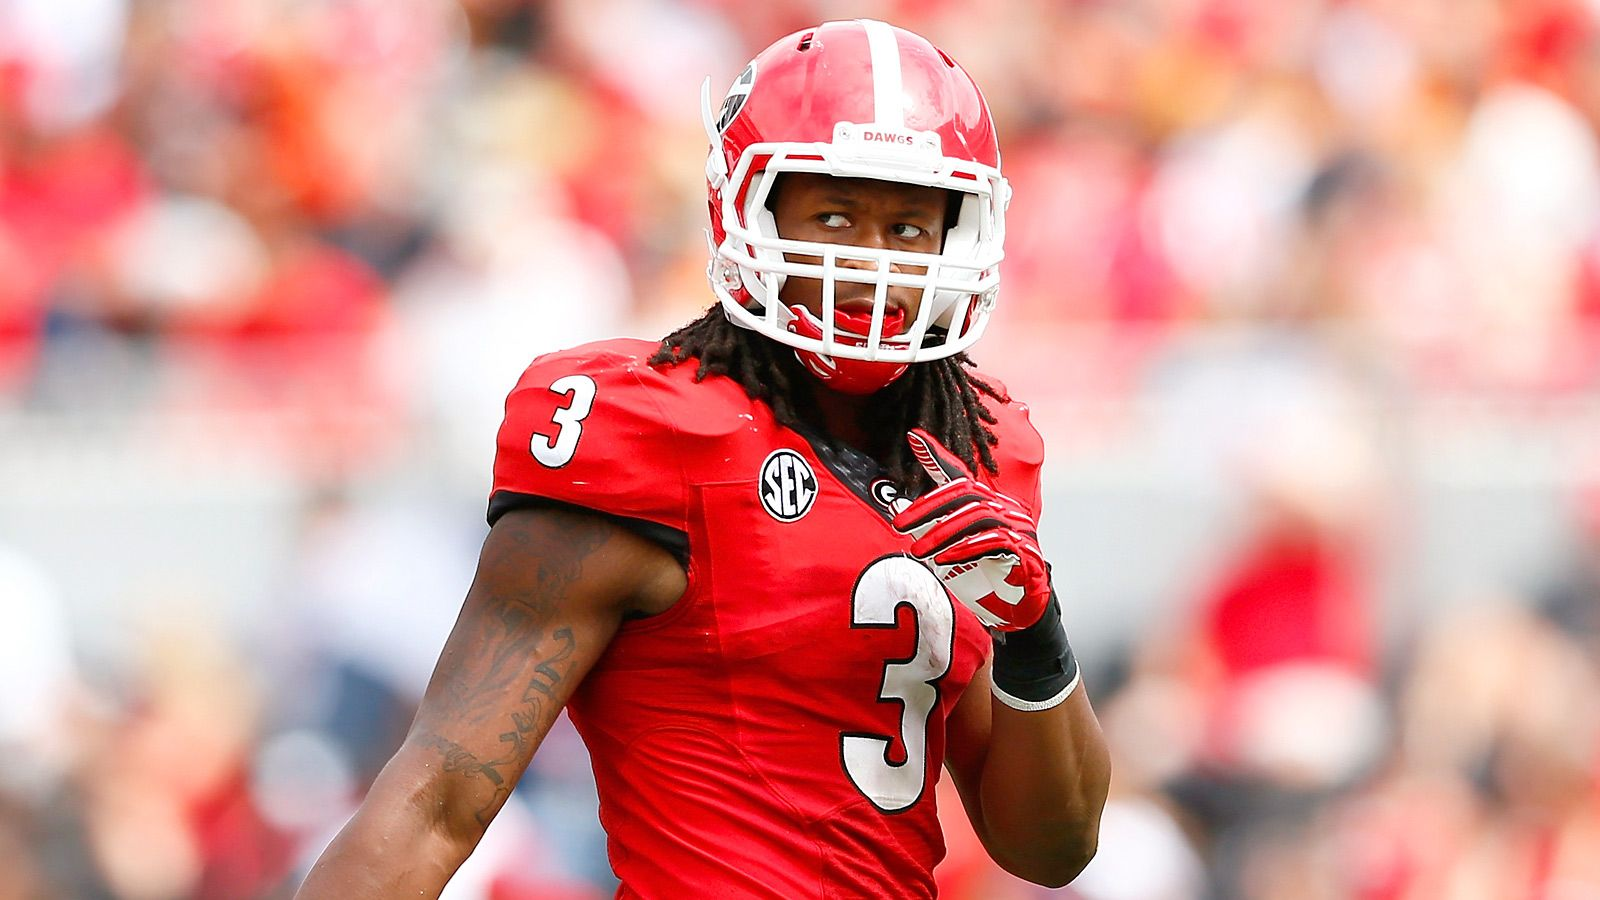 Georgia To File Paperwork With Ncaa To Reinstate Gurley Todd Gurley Georgia Fans Georgia Dawgs